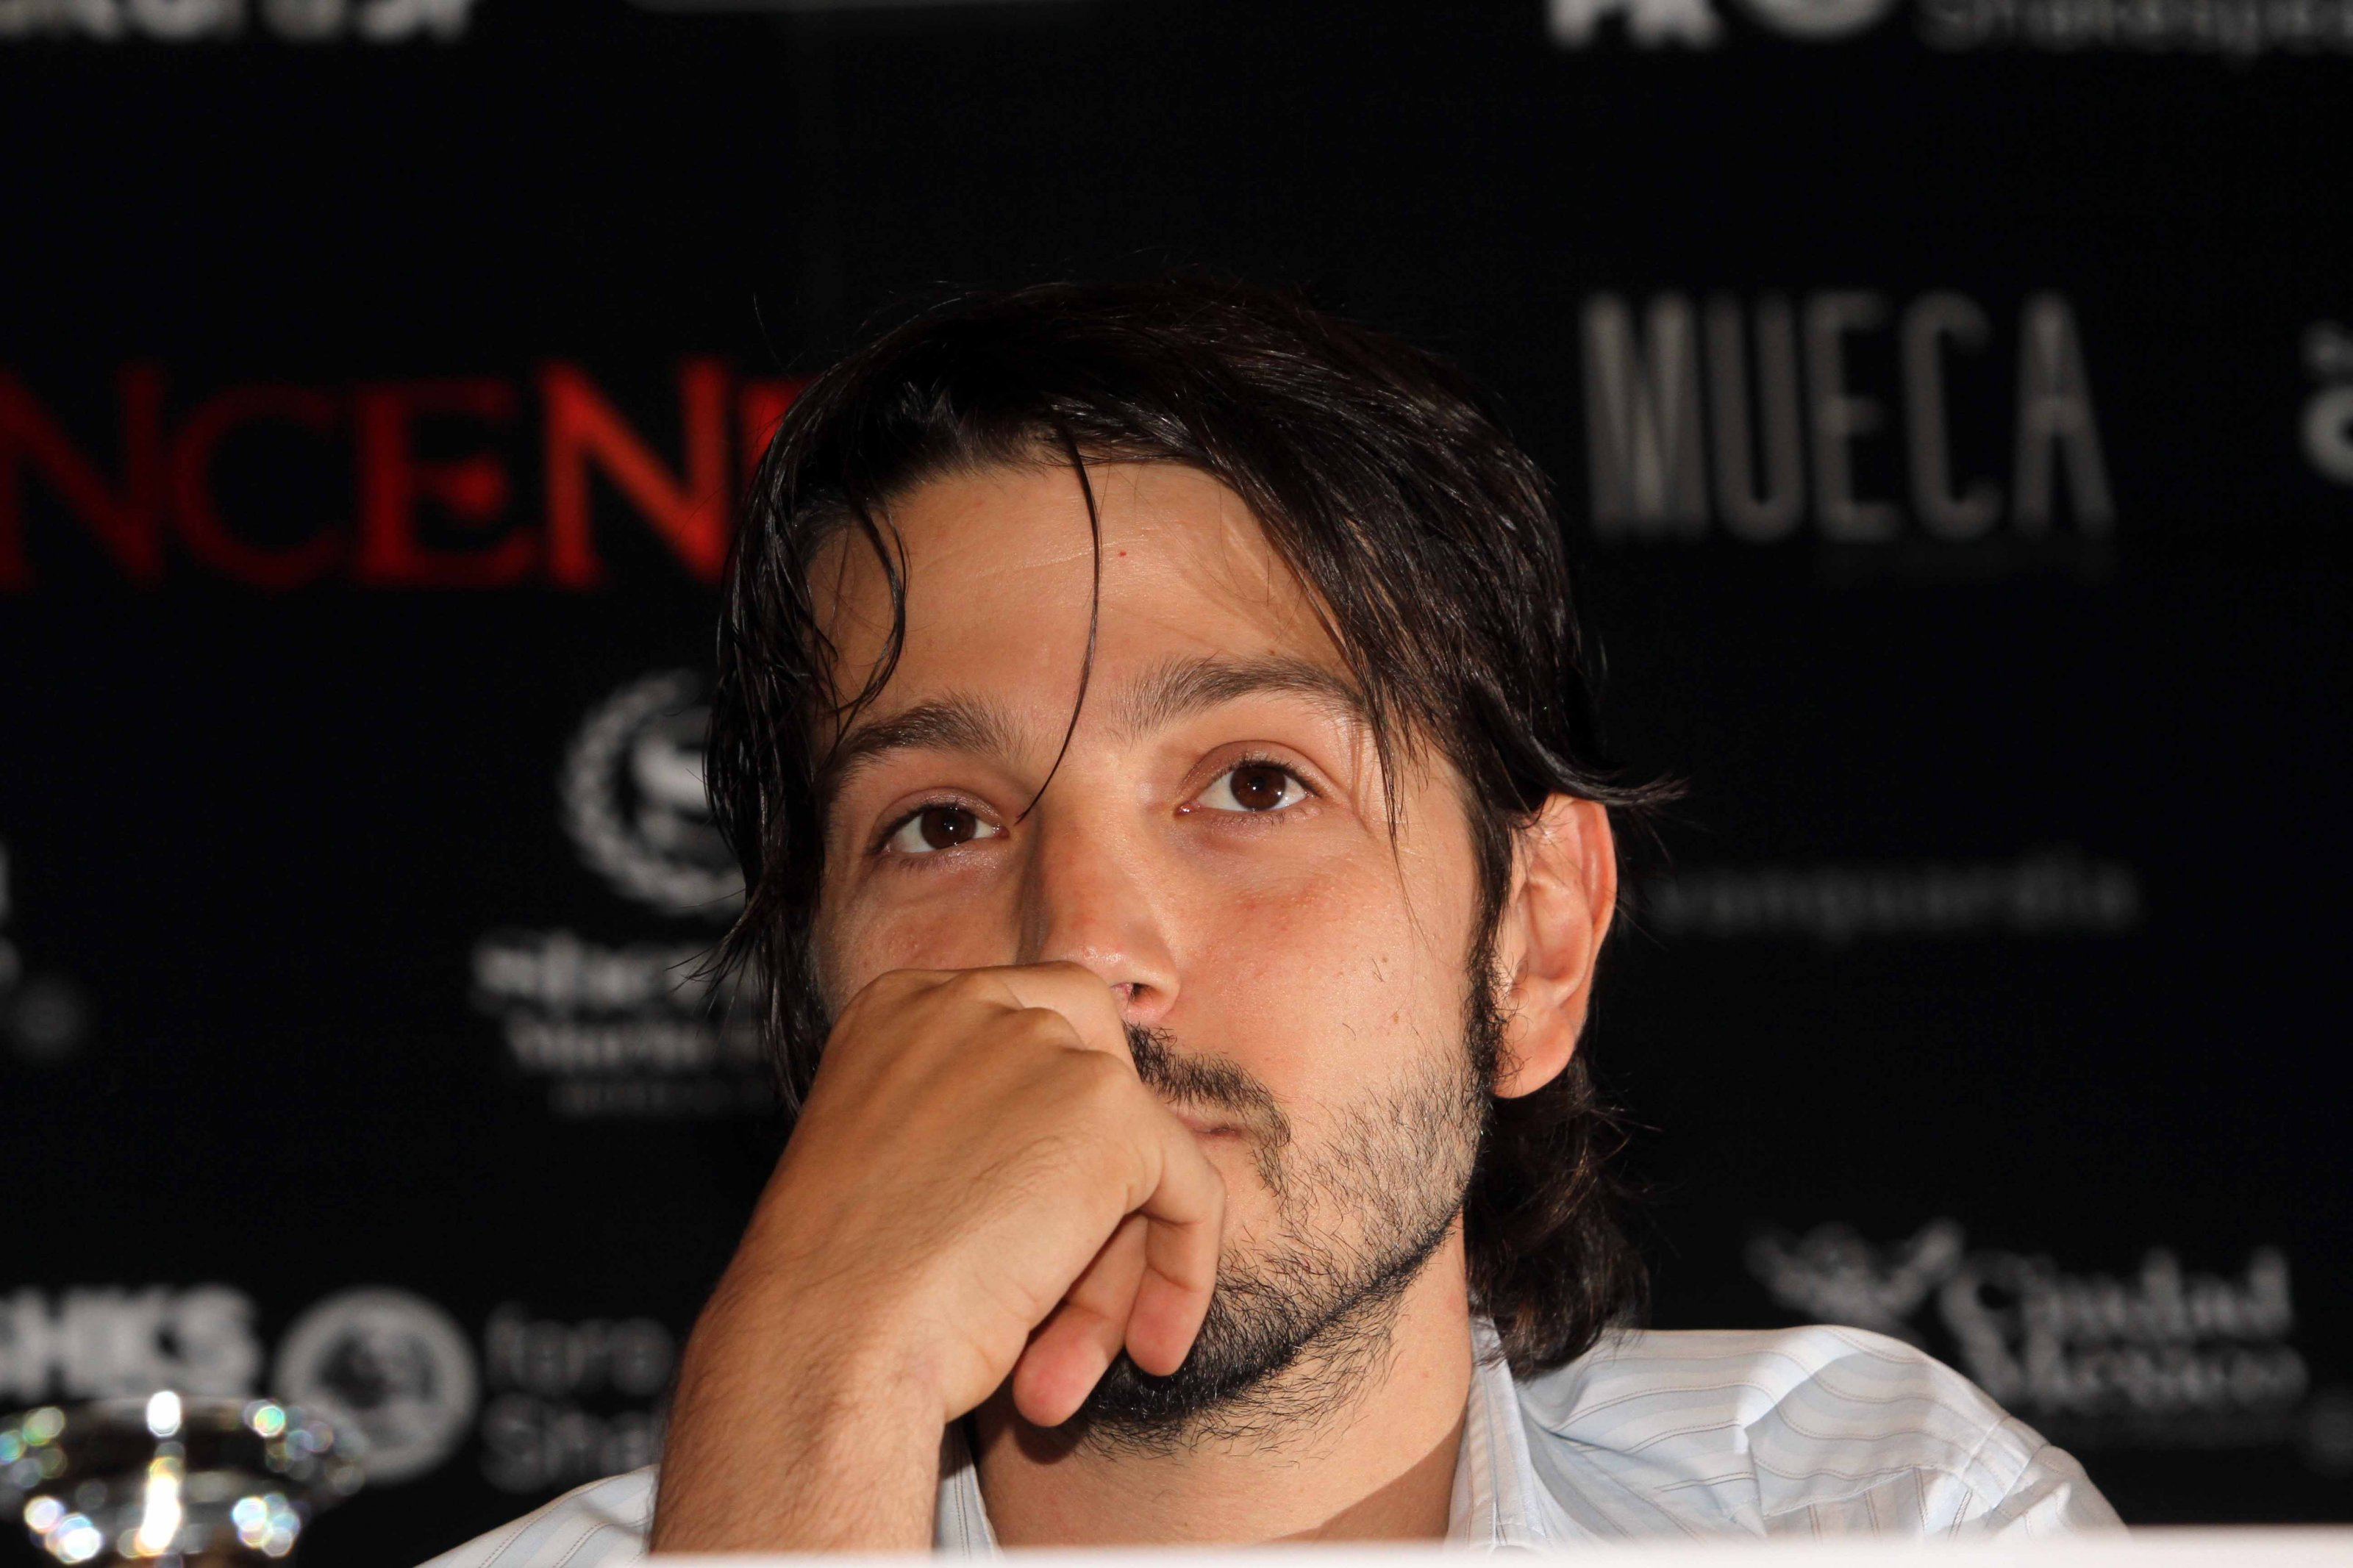 Diego Luna On How Day of the Dead Helped Him Cope With the Death of His Mother